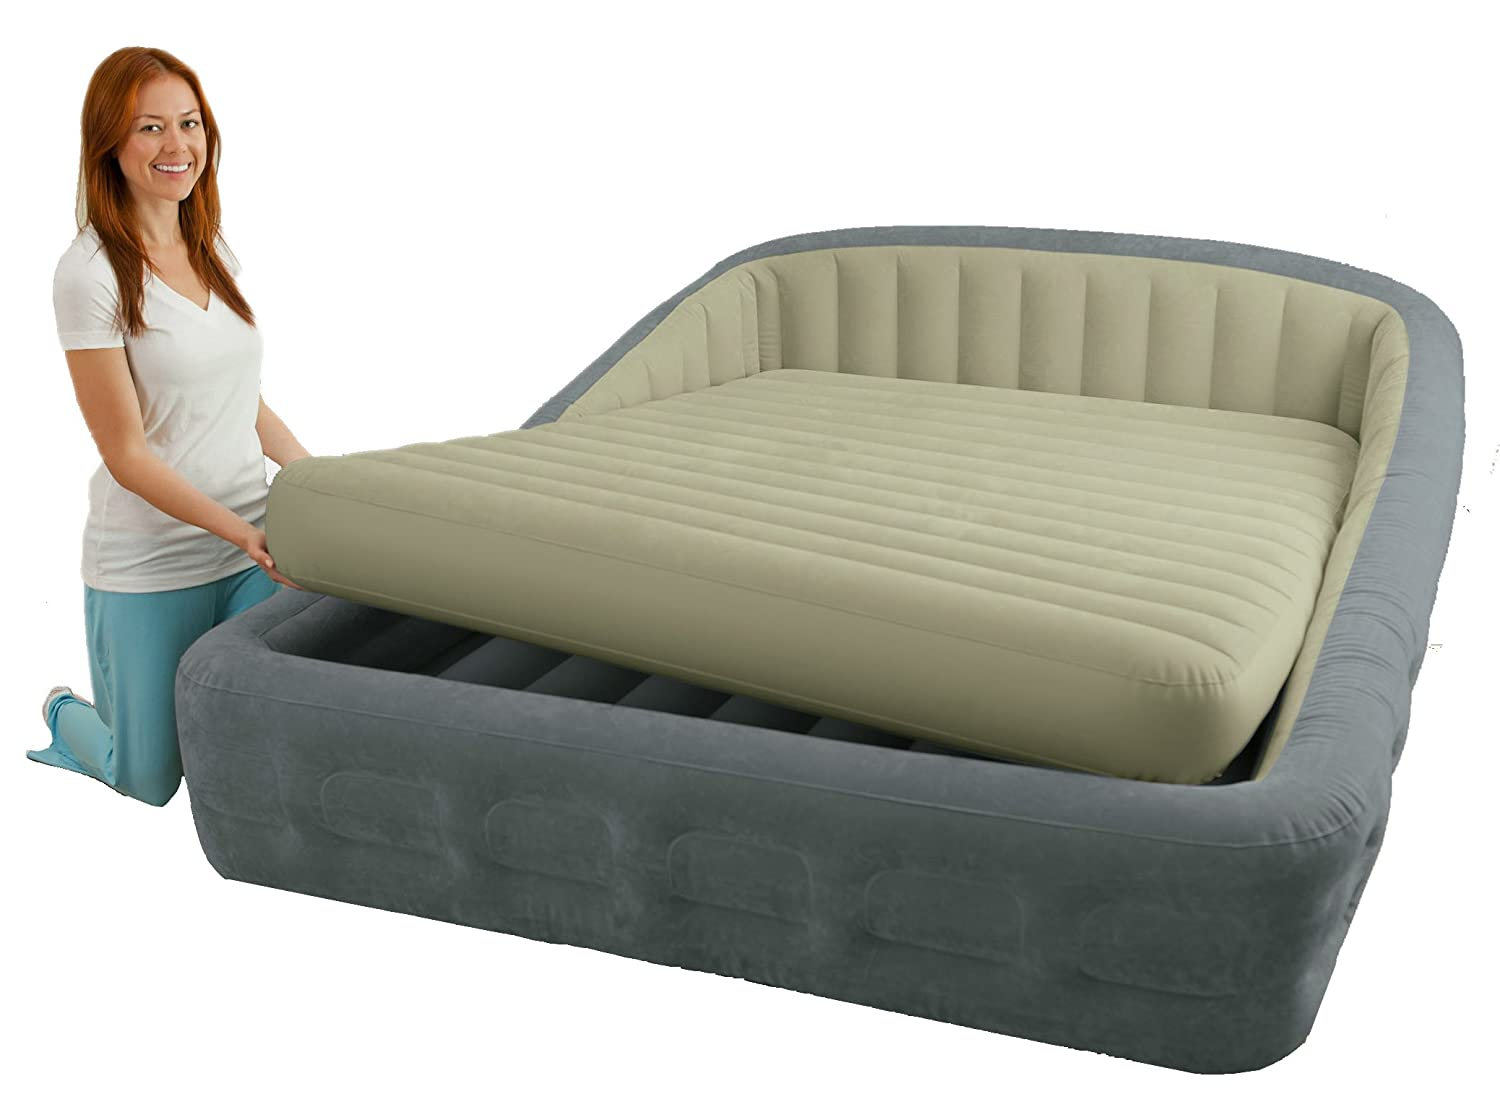 Lit Gonflable électrique Intex Premaire Dream Support 2 Personnes Lit Gonflable Lit Gonflable Intex Comfort Frame Xxl Matelas